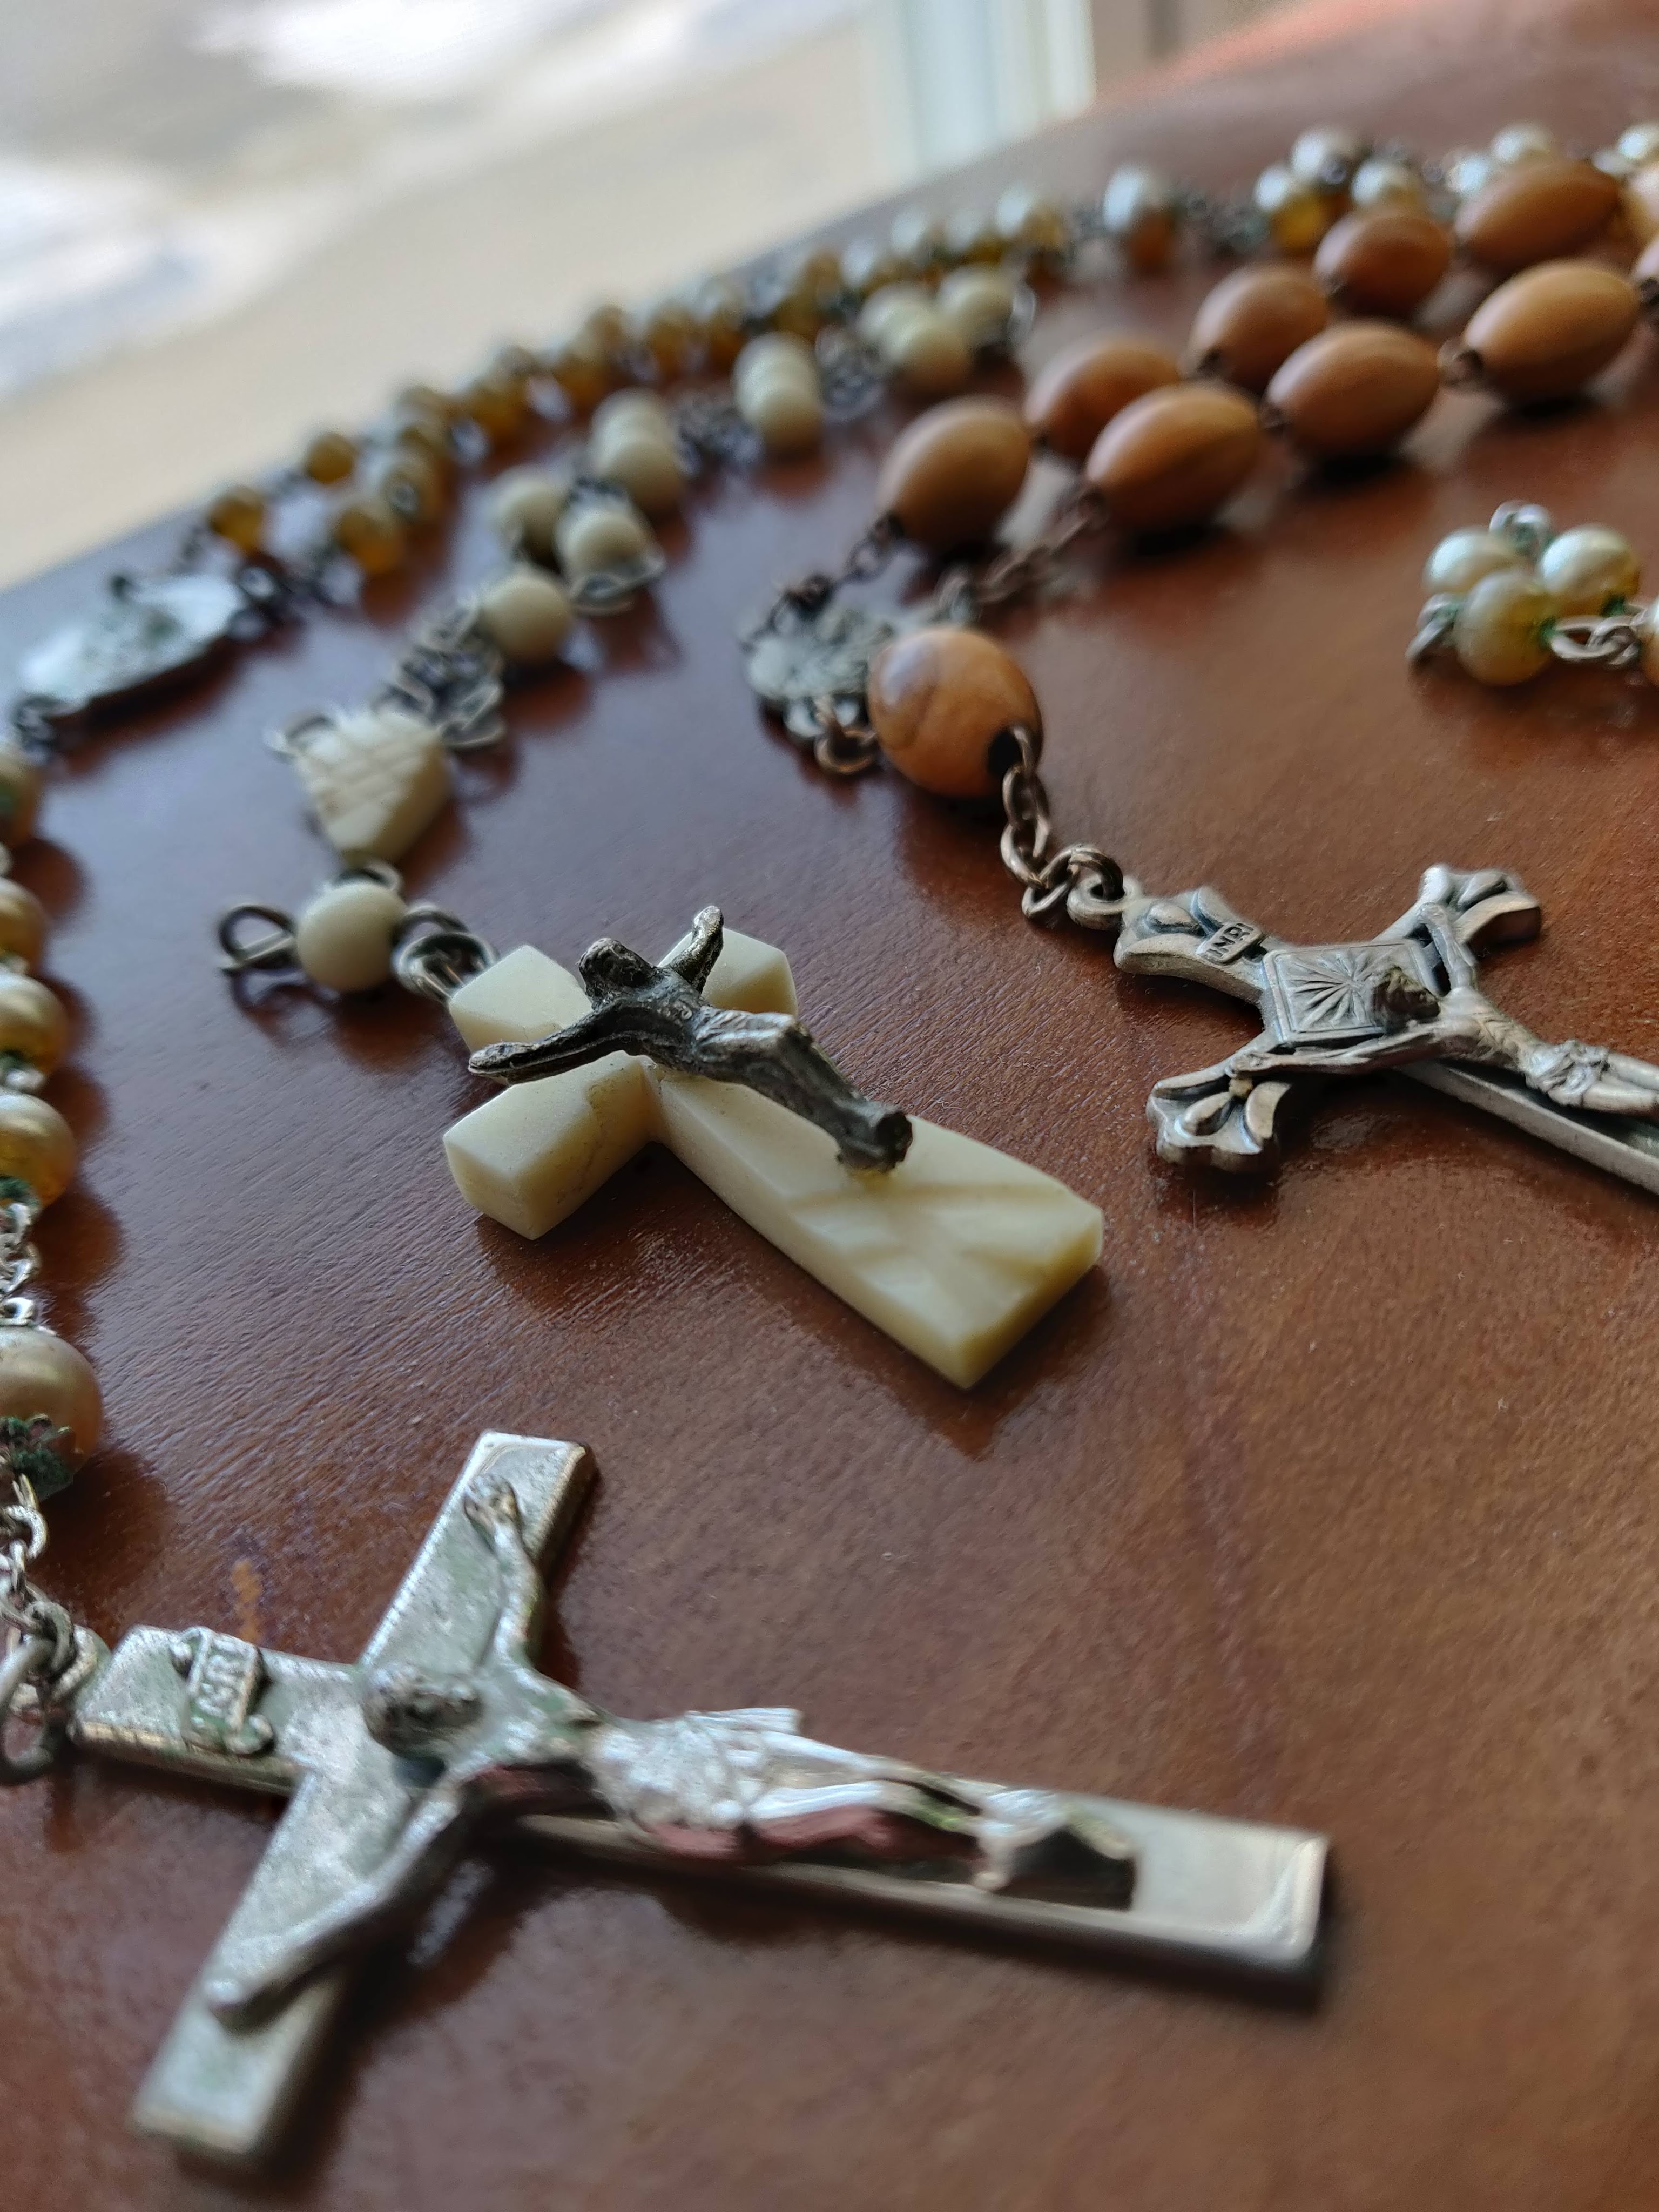 a close up of the crucifixes of three Rosary strings. One is a metal crucifix attached to a pearl-bead rosary, one is bone, attached to bone beads, and the third is wood beads with a metal crucifix.